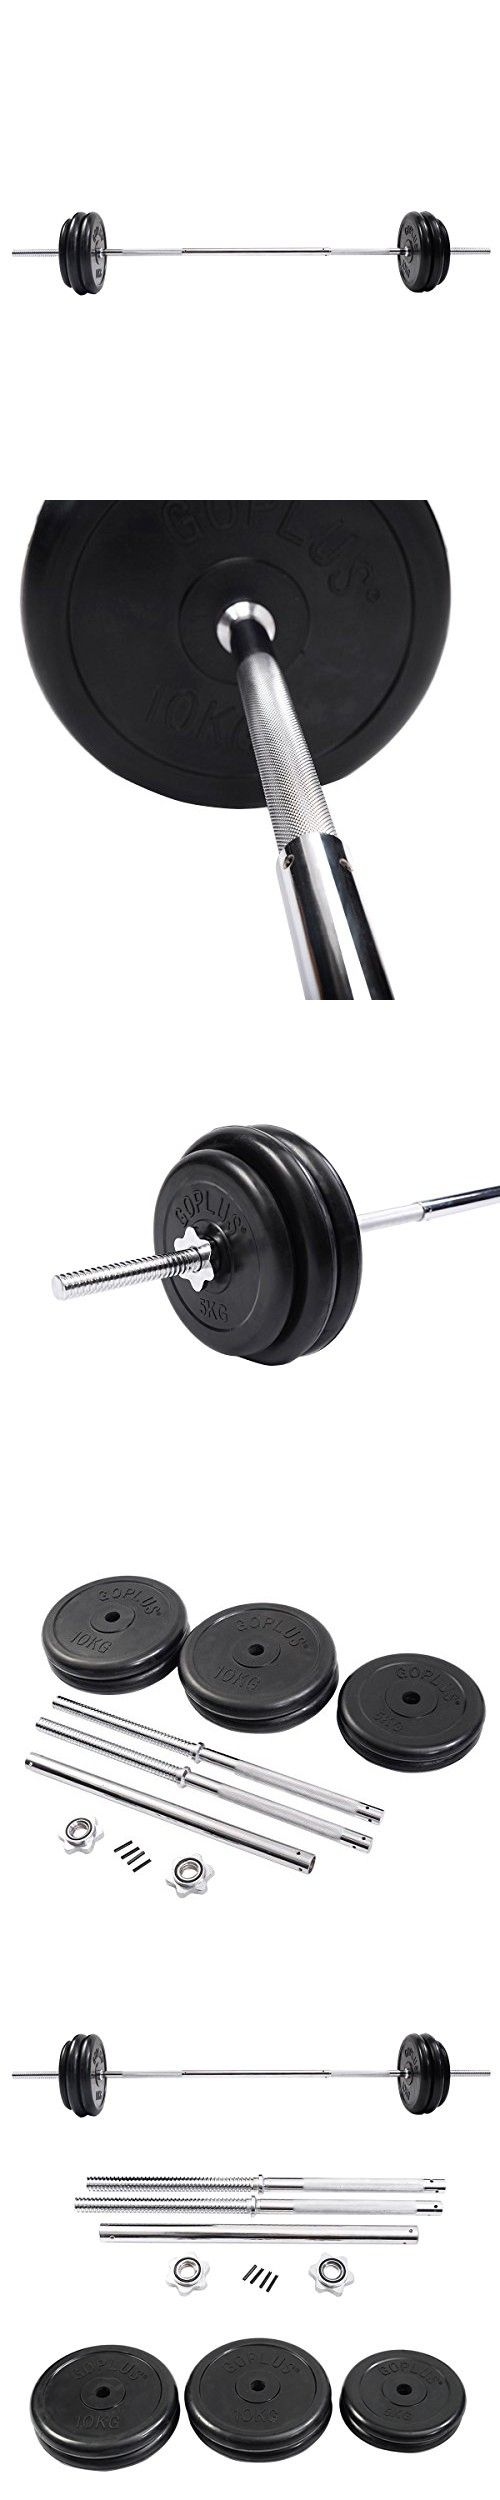 Giantex 125 Lb Barbell Dumbbell Weight Set Gym Lifting Exercise Curl Bar Workout